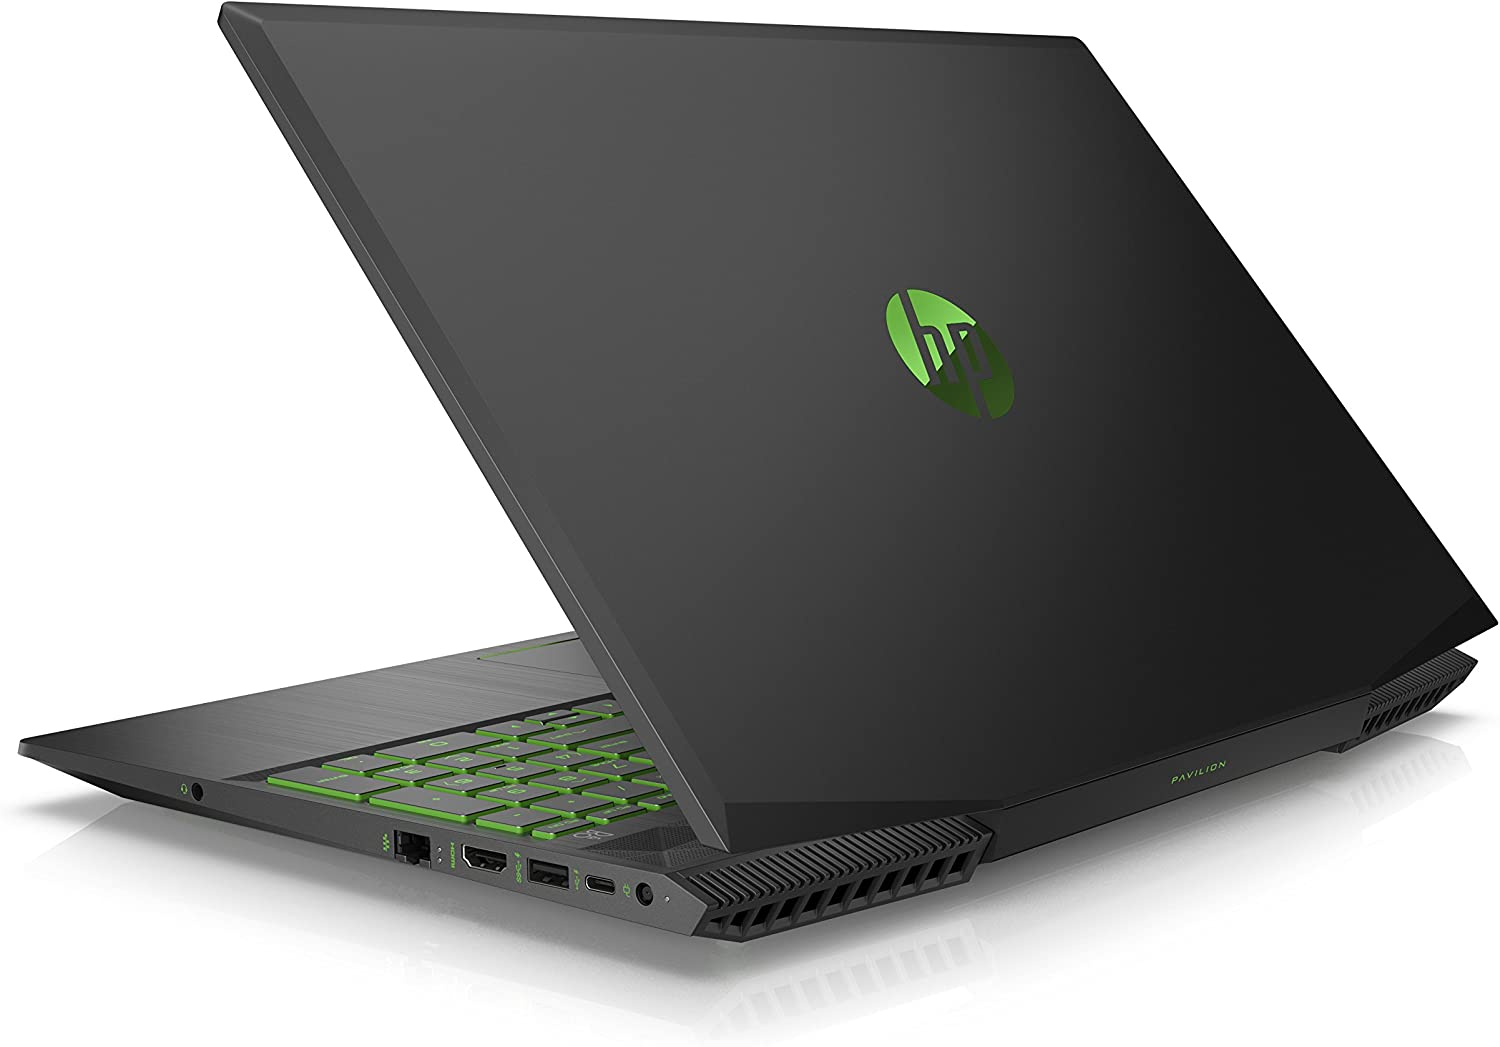 81K4QvIaPWL. AC SL1500 Best Laptop for Students: The Thinnest Laptops for Students